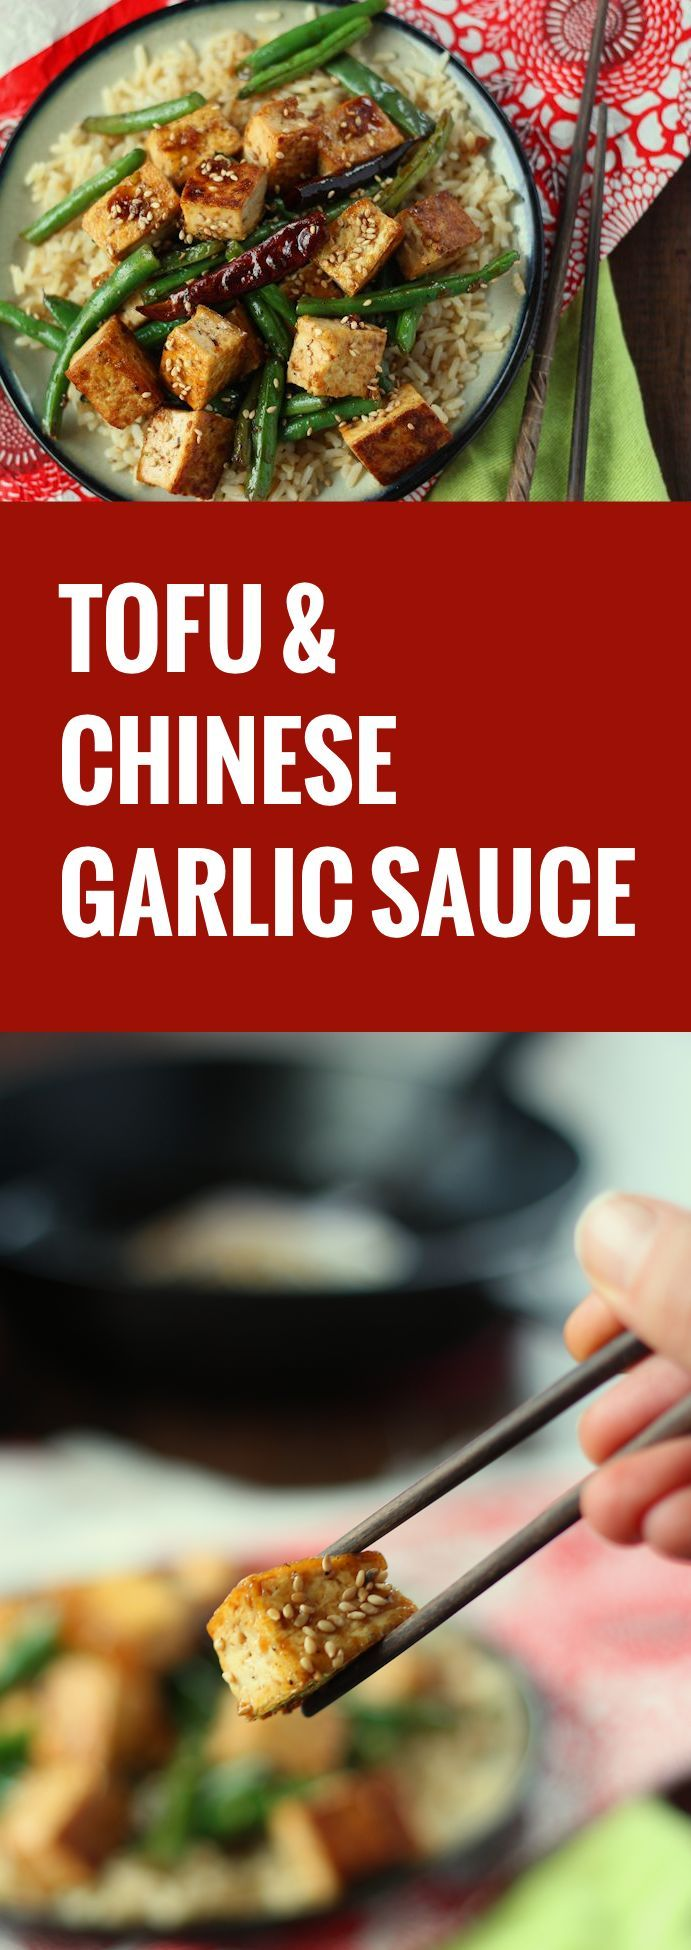 This flavorful garlic tofu stir-fry is made with crispy bit of pan-fried tofu served up with crispy green beans and drenched in Chinese garlic sauce.